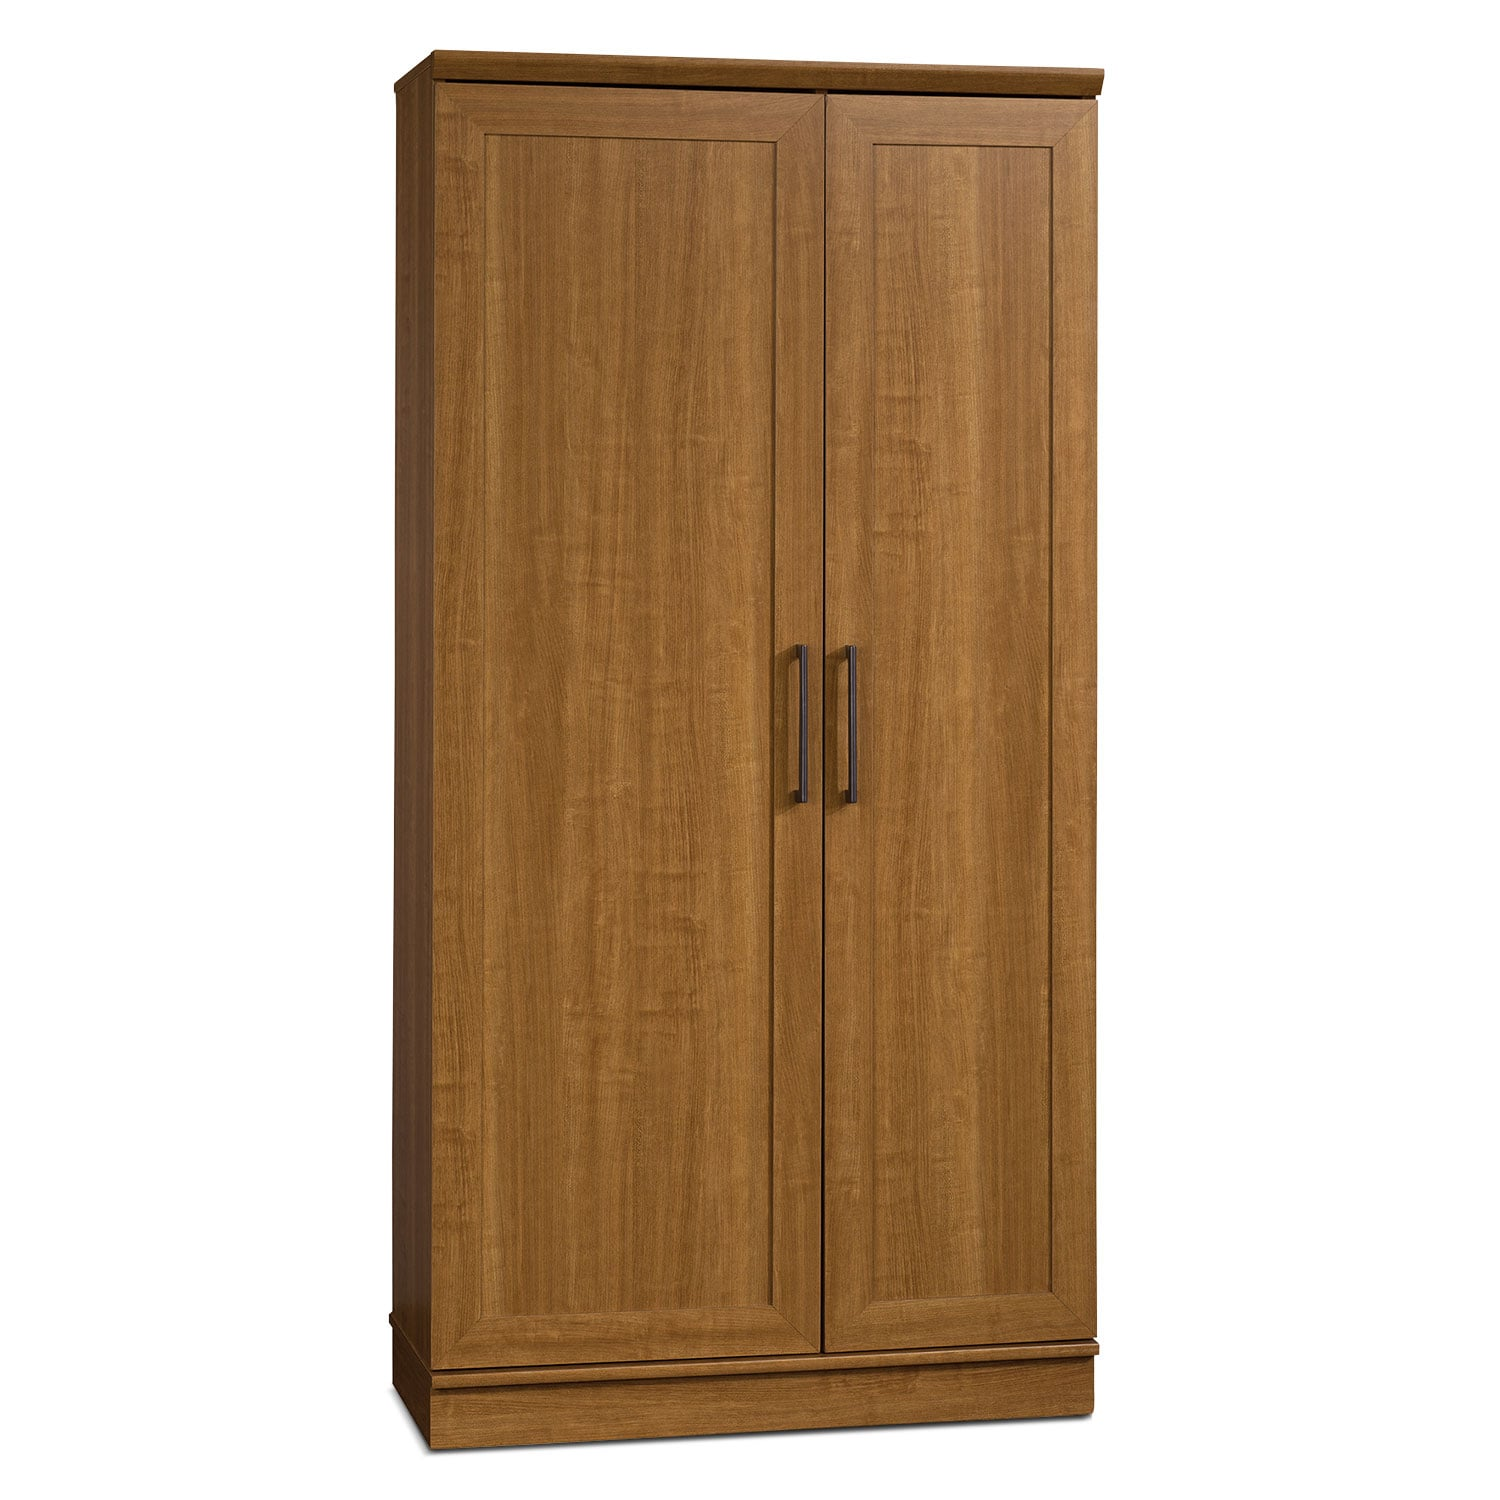 "Franklin 35"" Storage Cabinet"